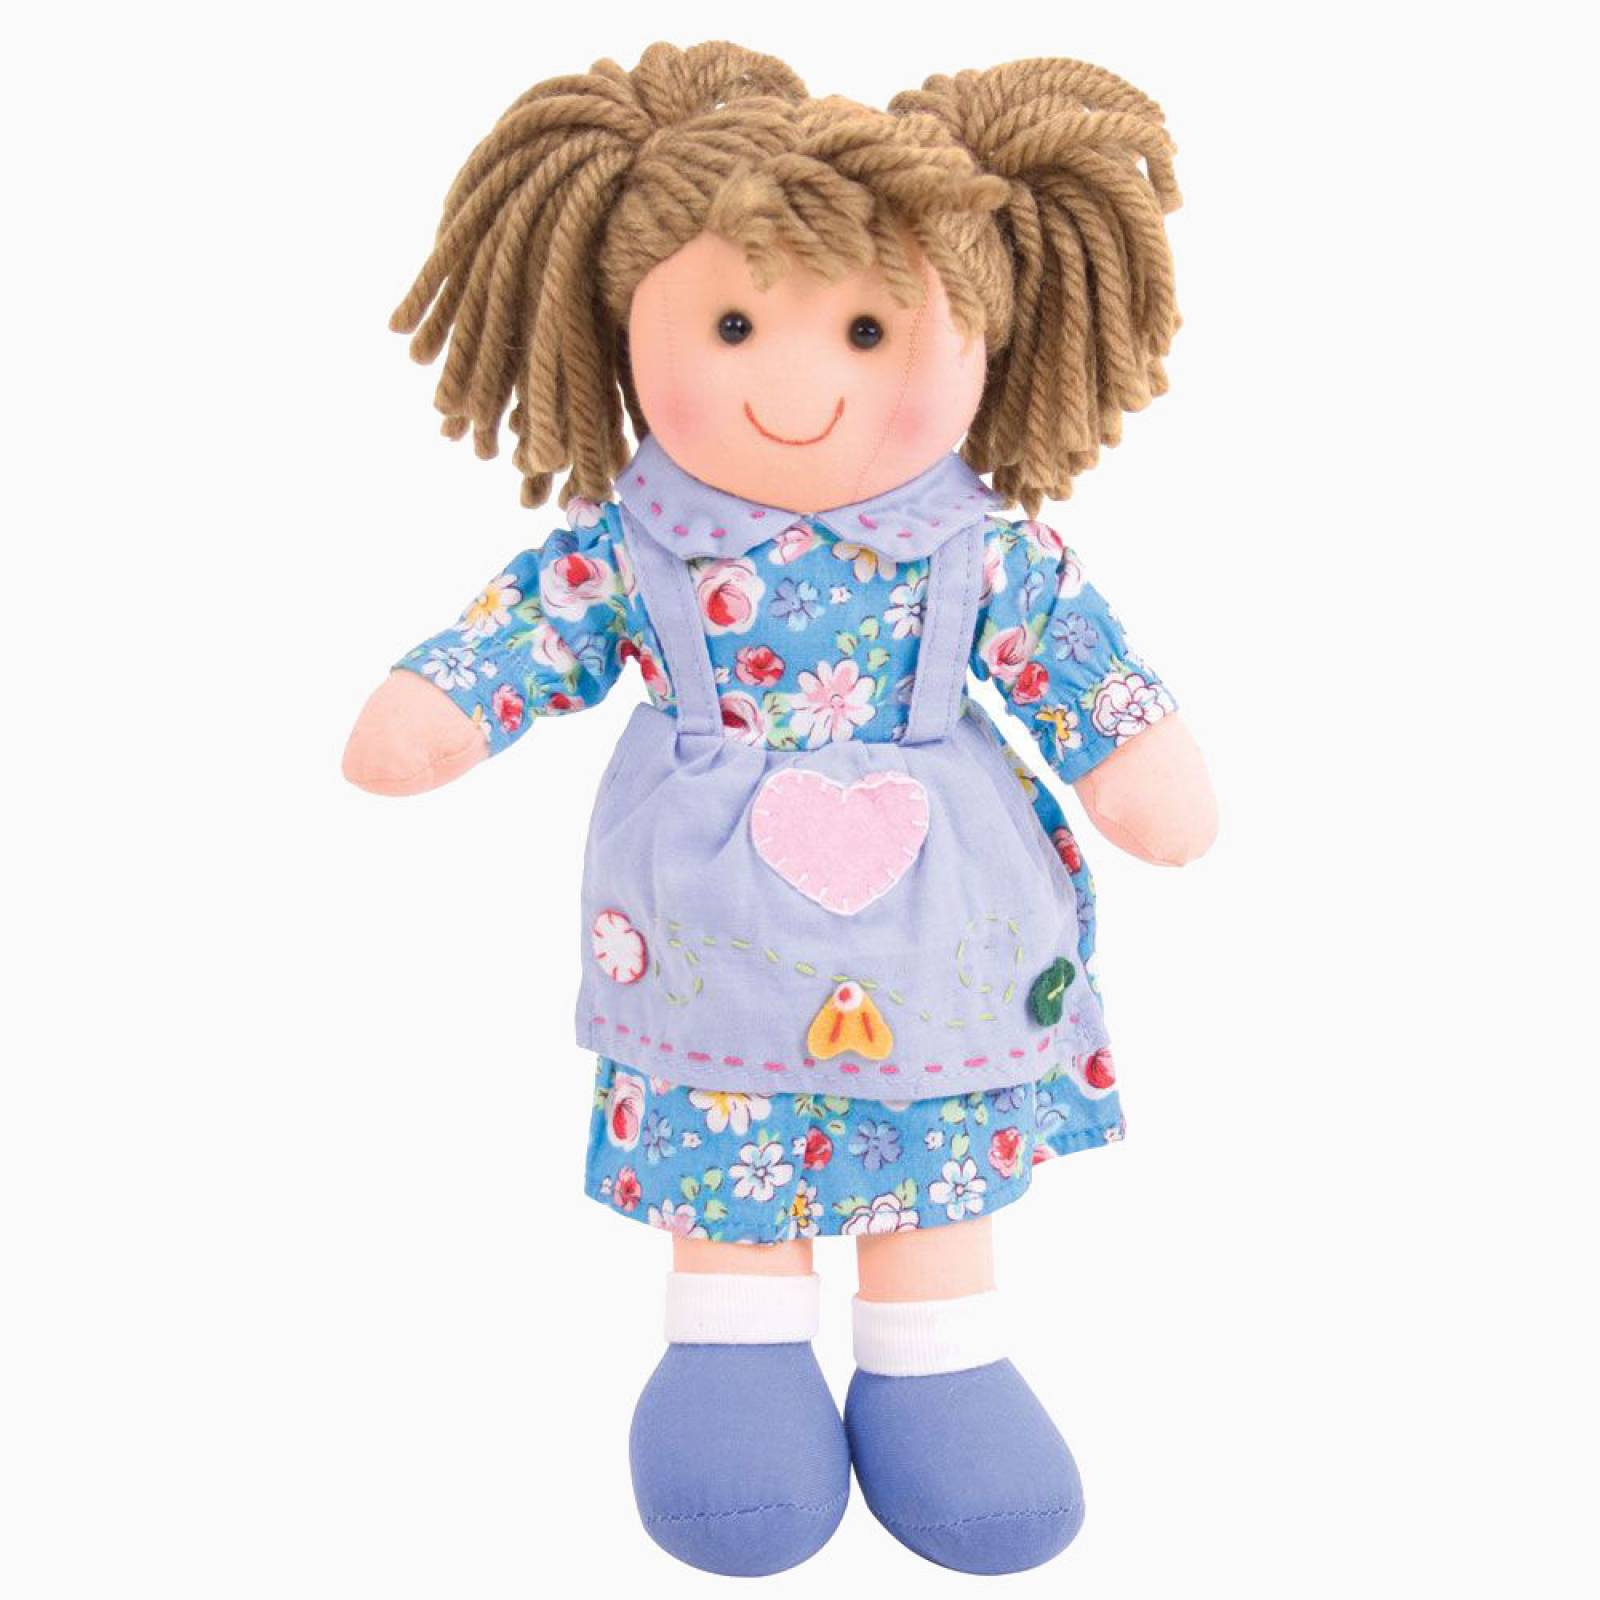 Grace - Traditional Rag Doll 0+